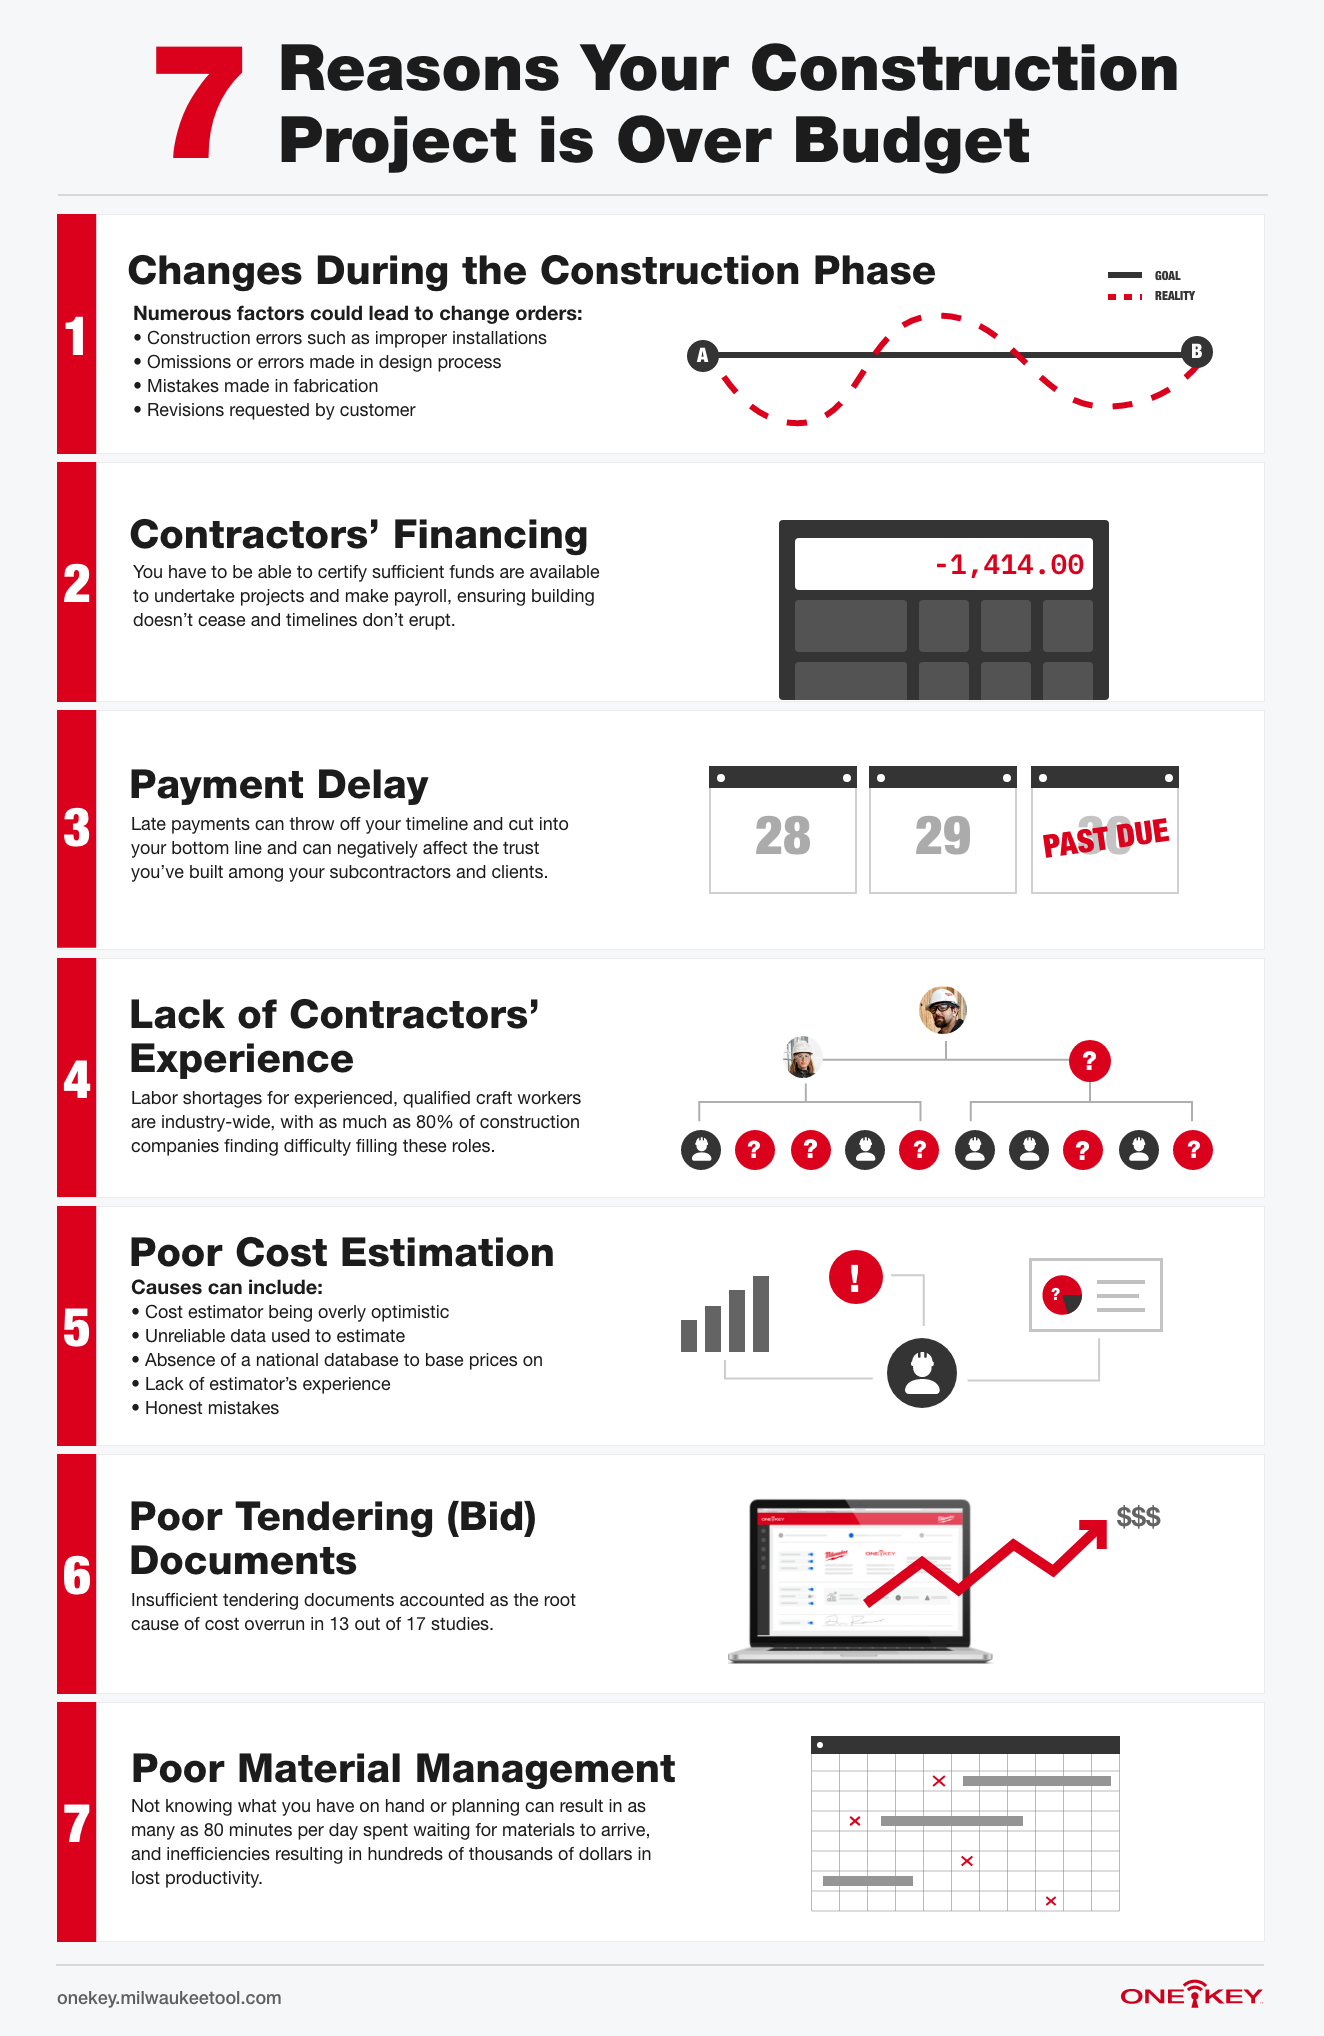 An infographic depicts 7 types of cost overruns in the construction industry